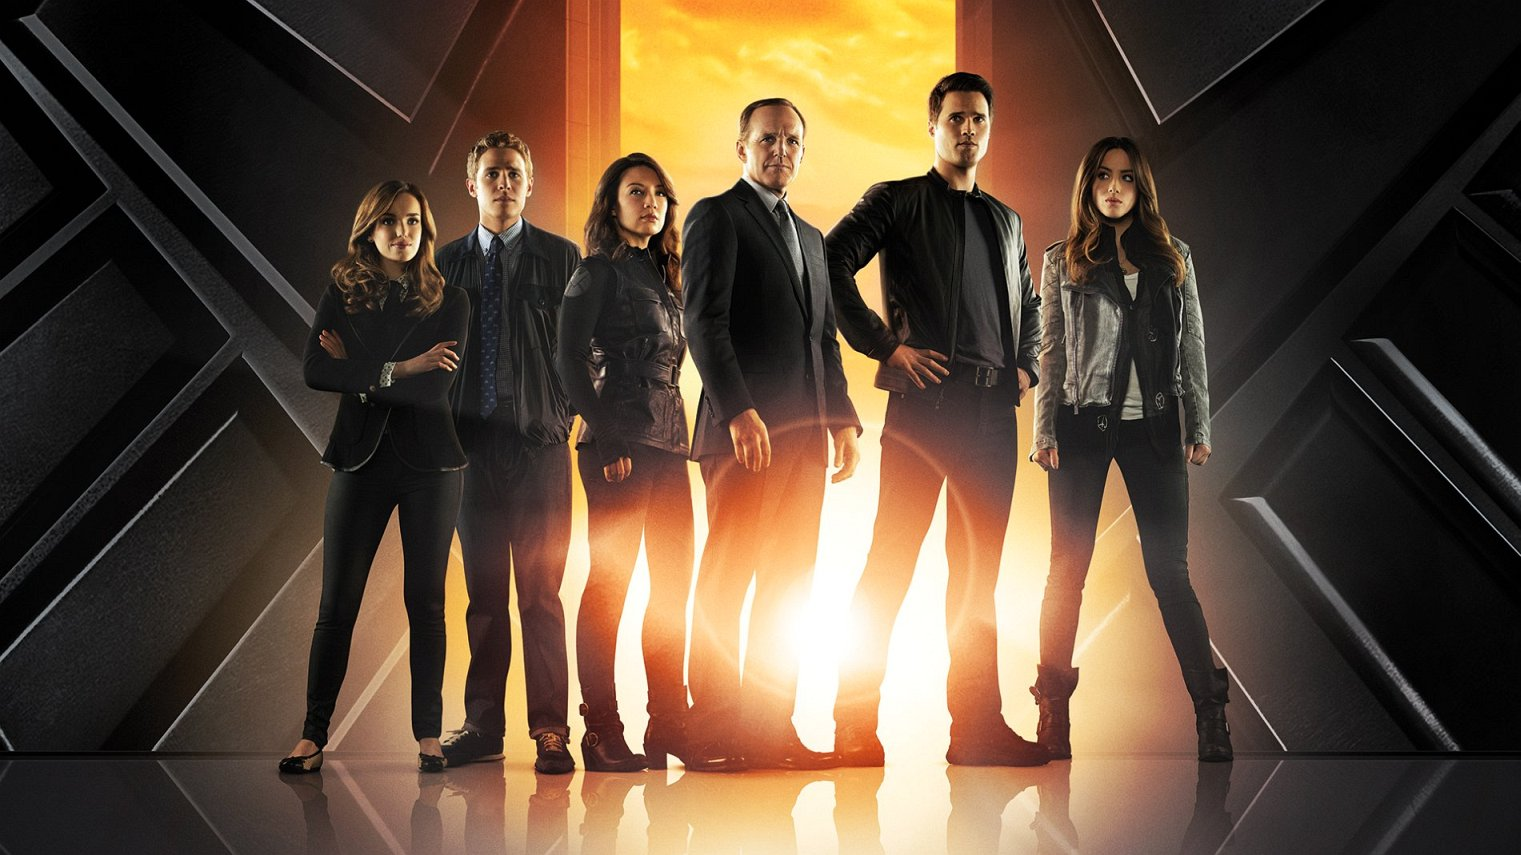 Marvel's Agents of S.H.I.E.L.D. season #currentseasons# air rime